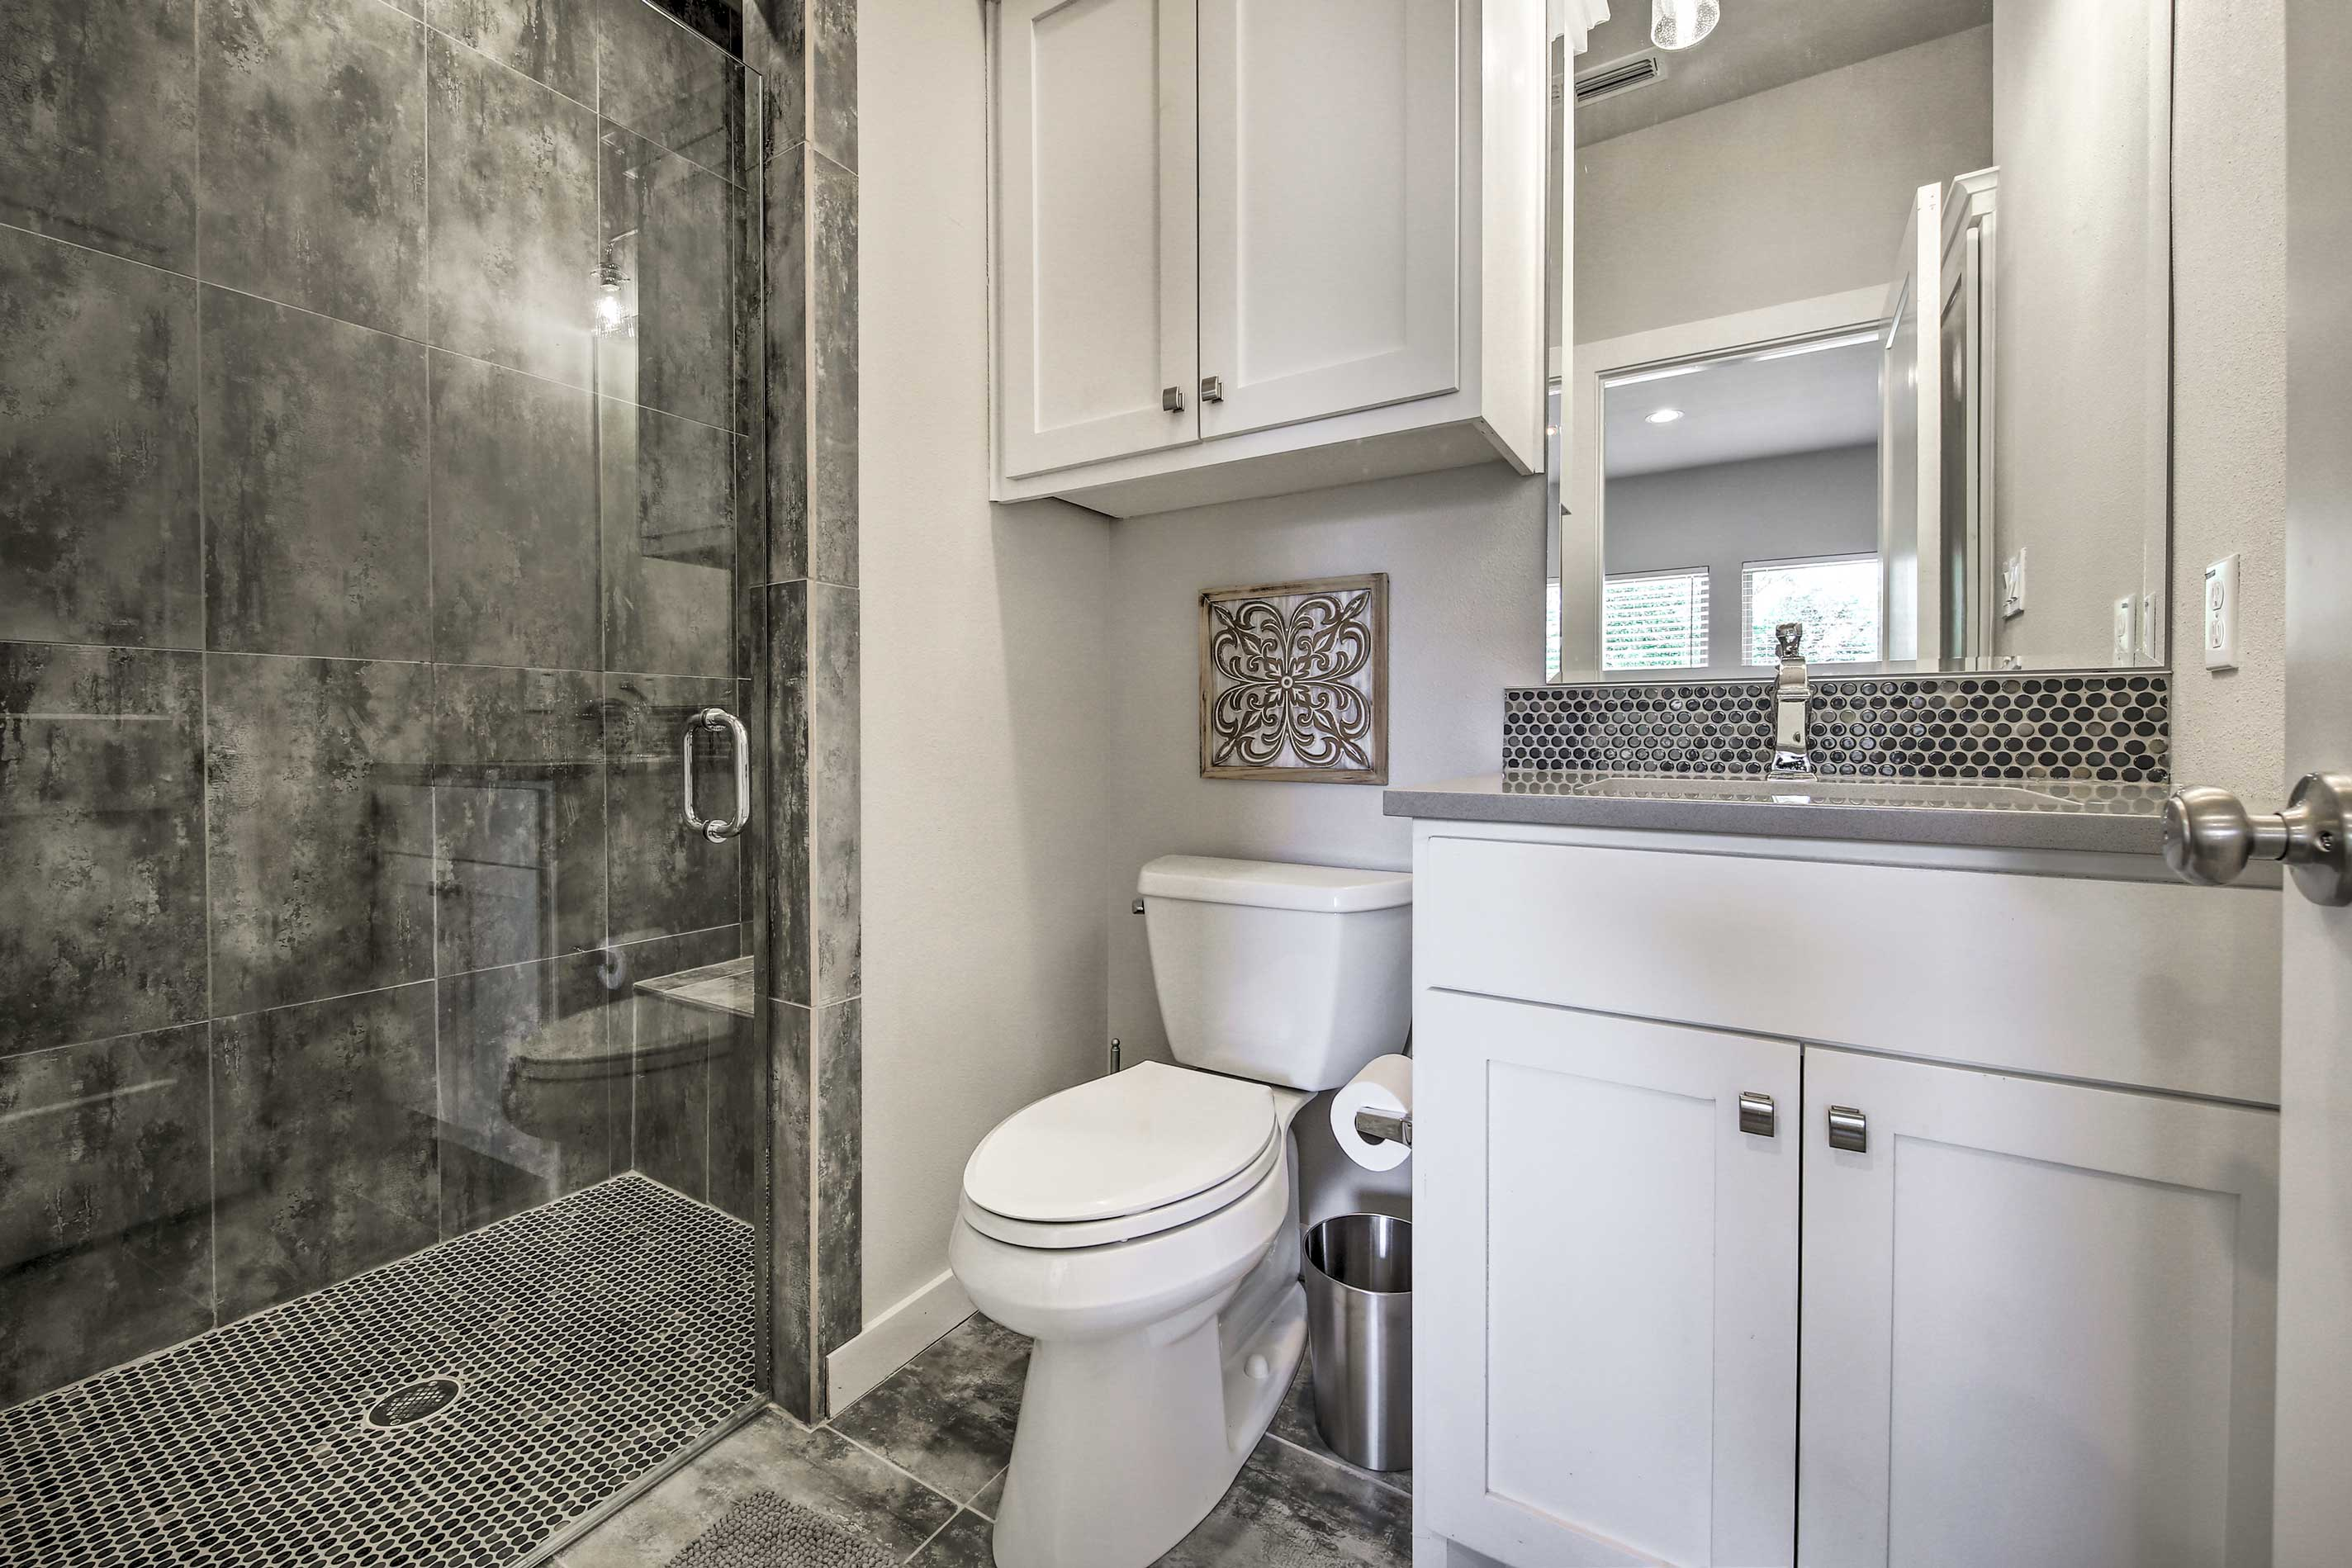 The full bath contains a walk-in shower and mirrored vanity.